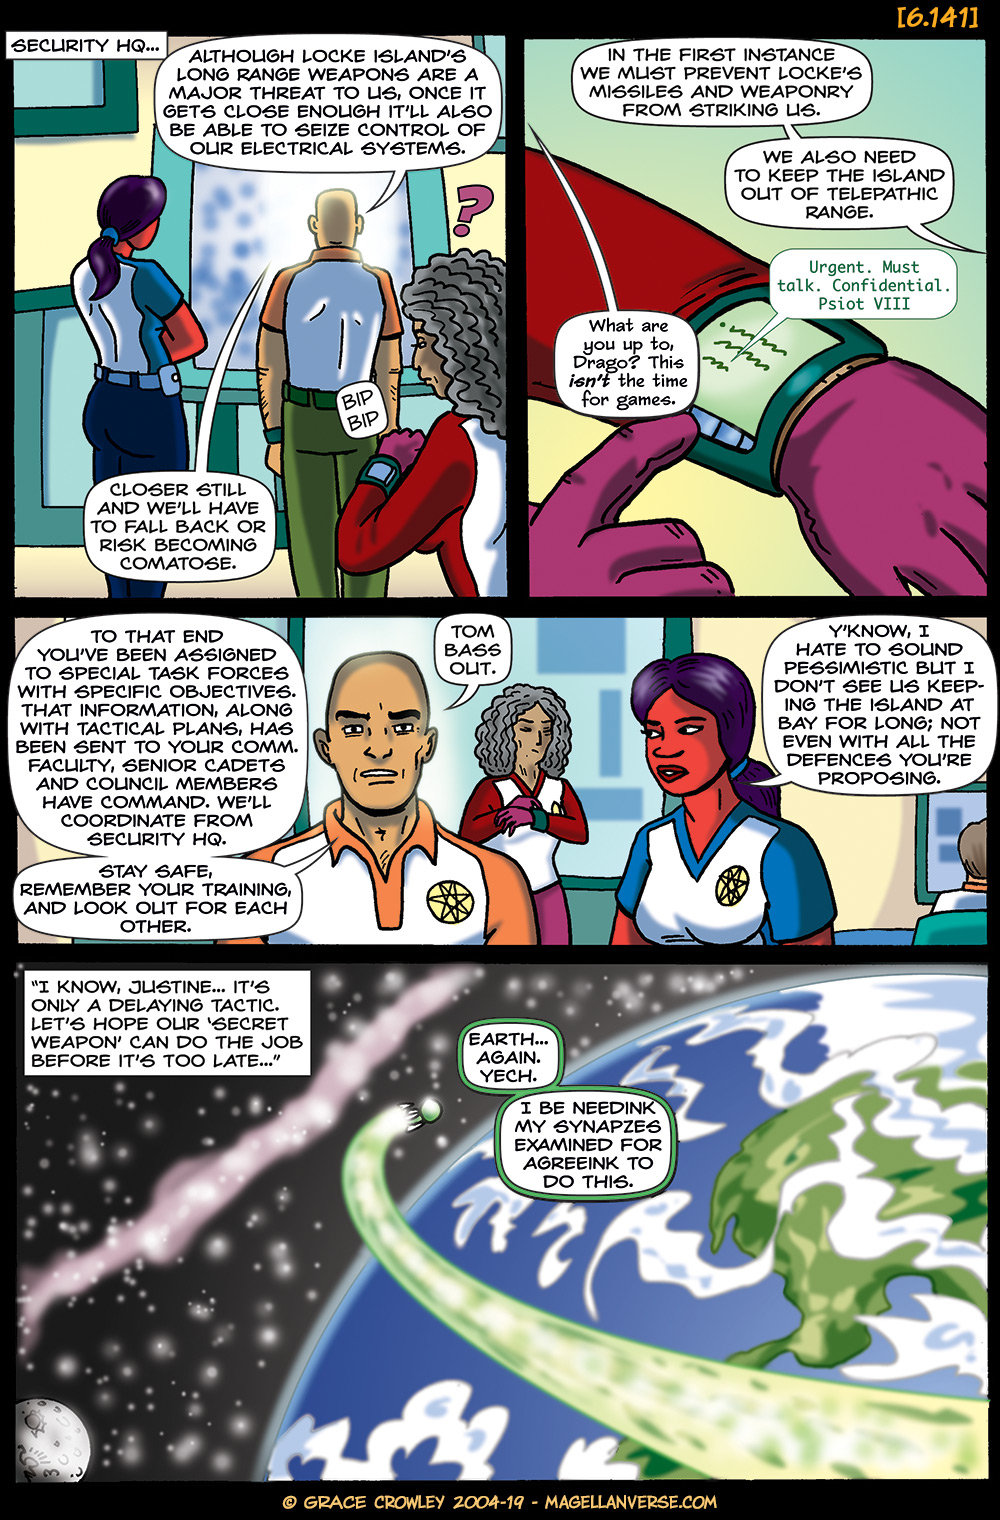 Page 6.141